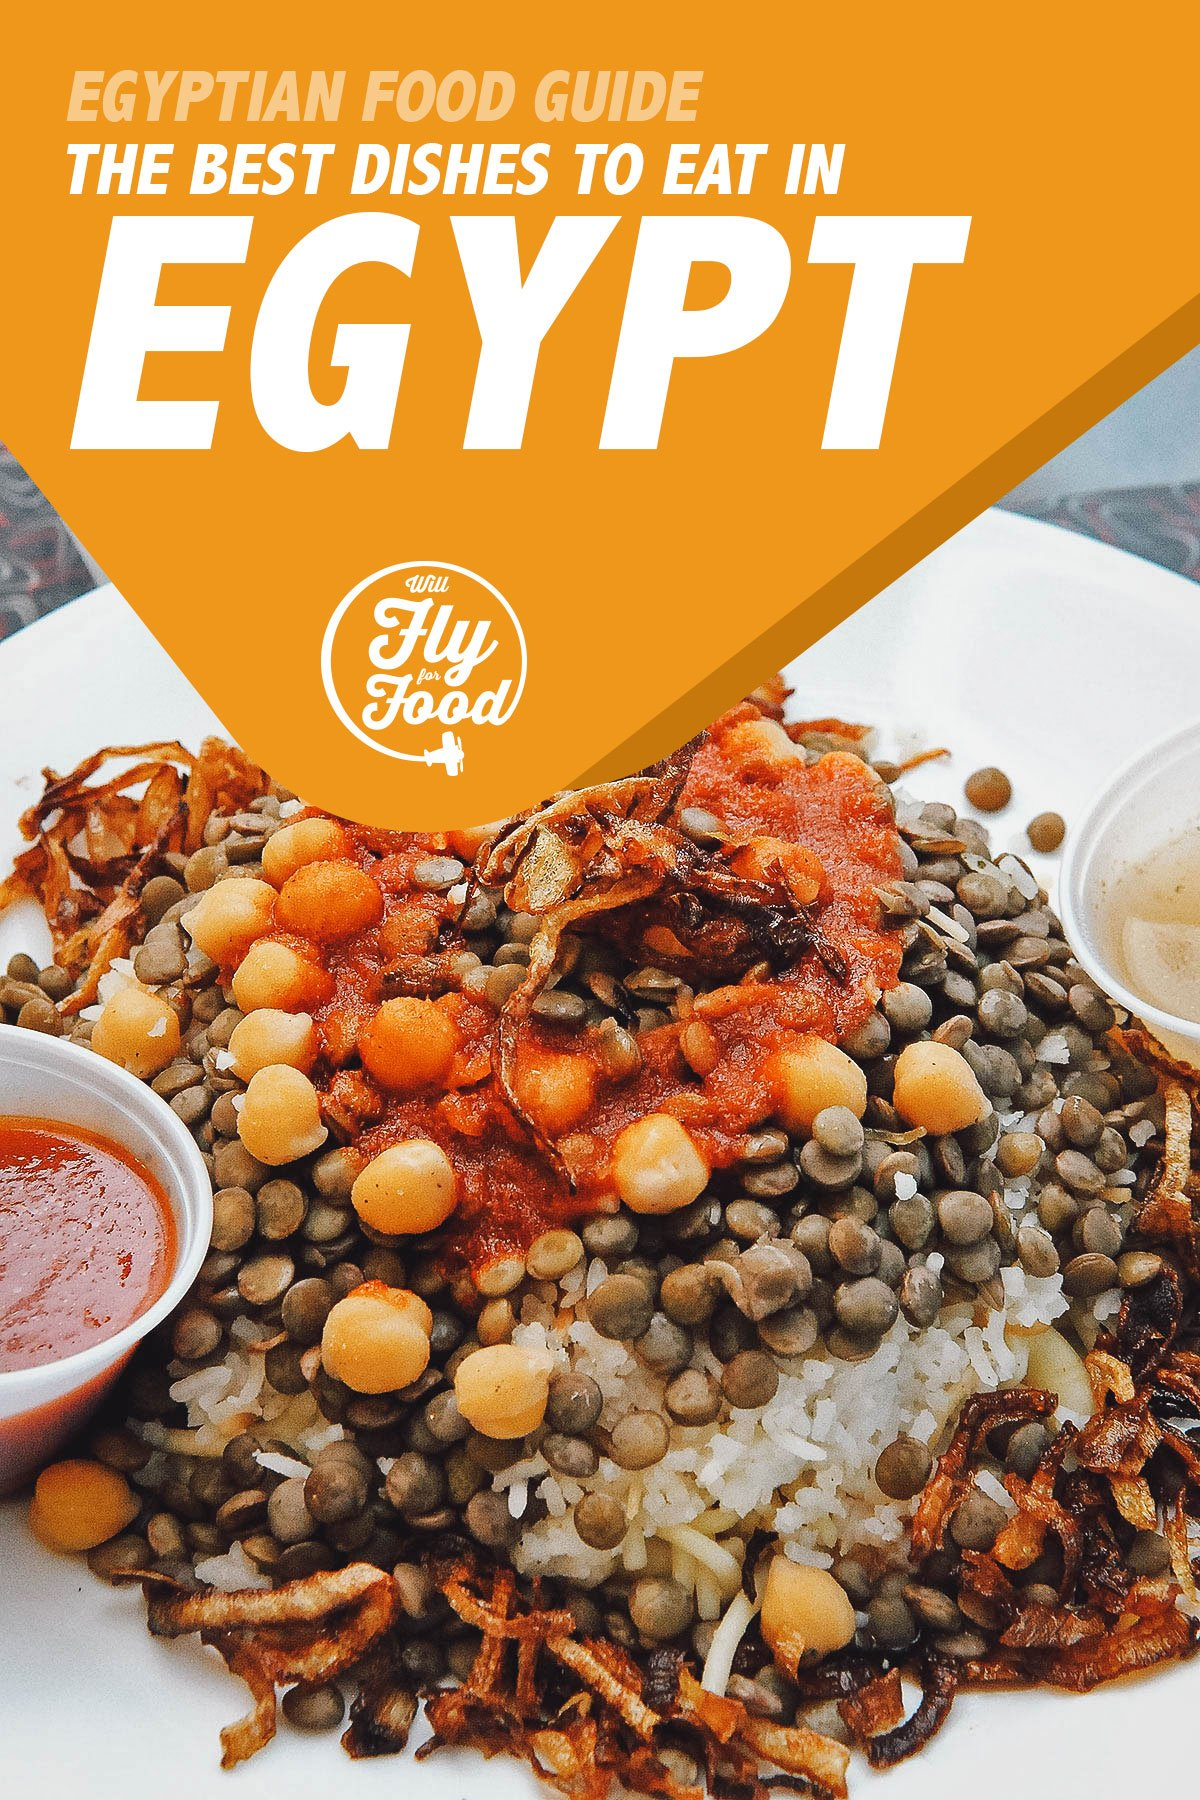 Kushari, an Egyptian food favorite made with lentils, fried onions, and tomato sauce